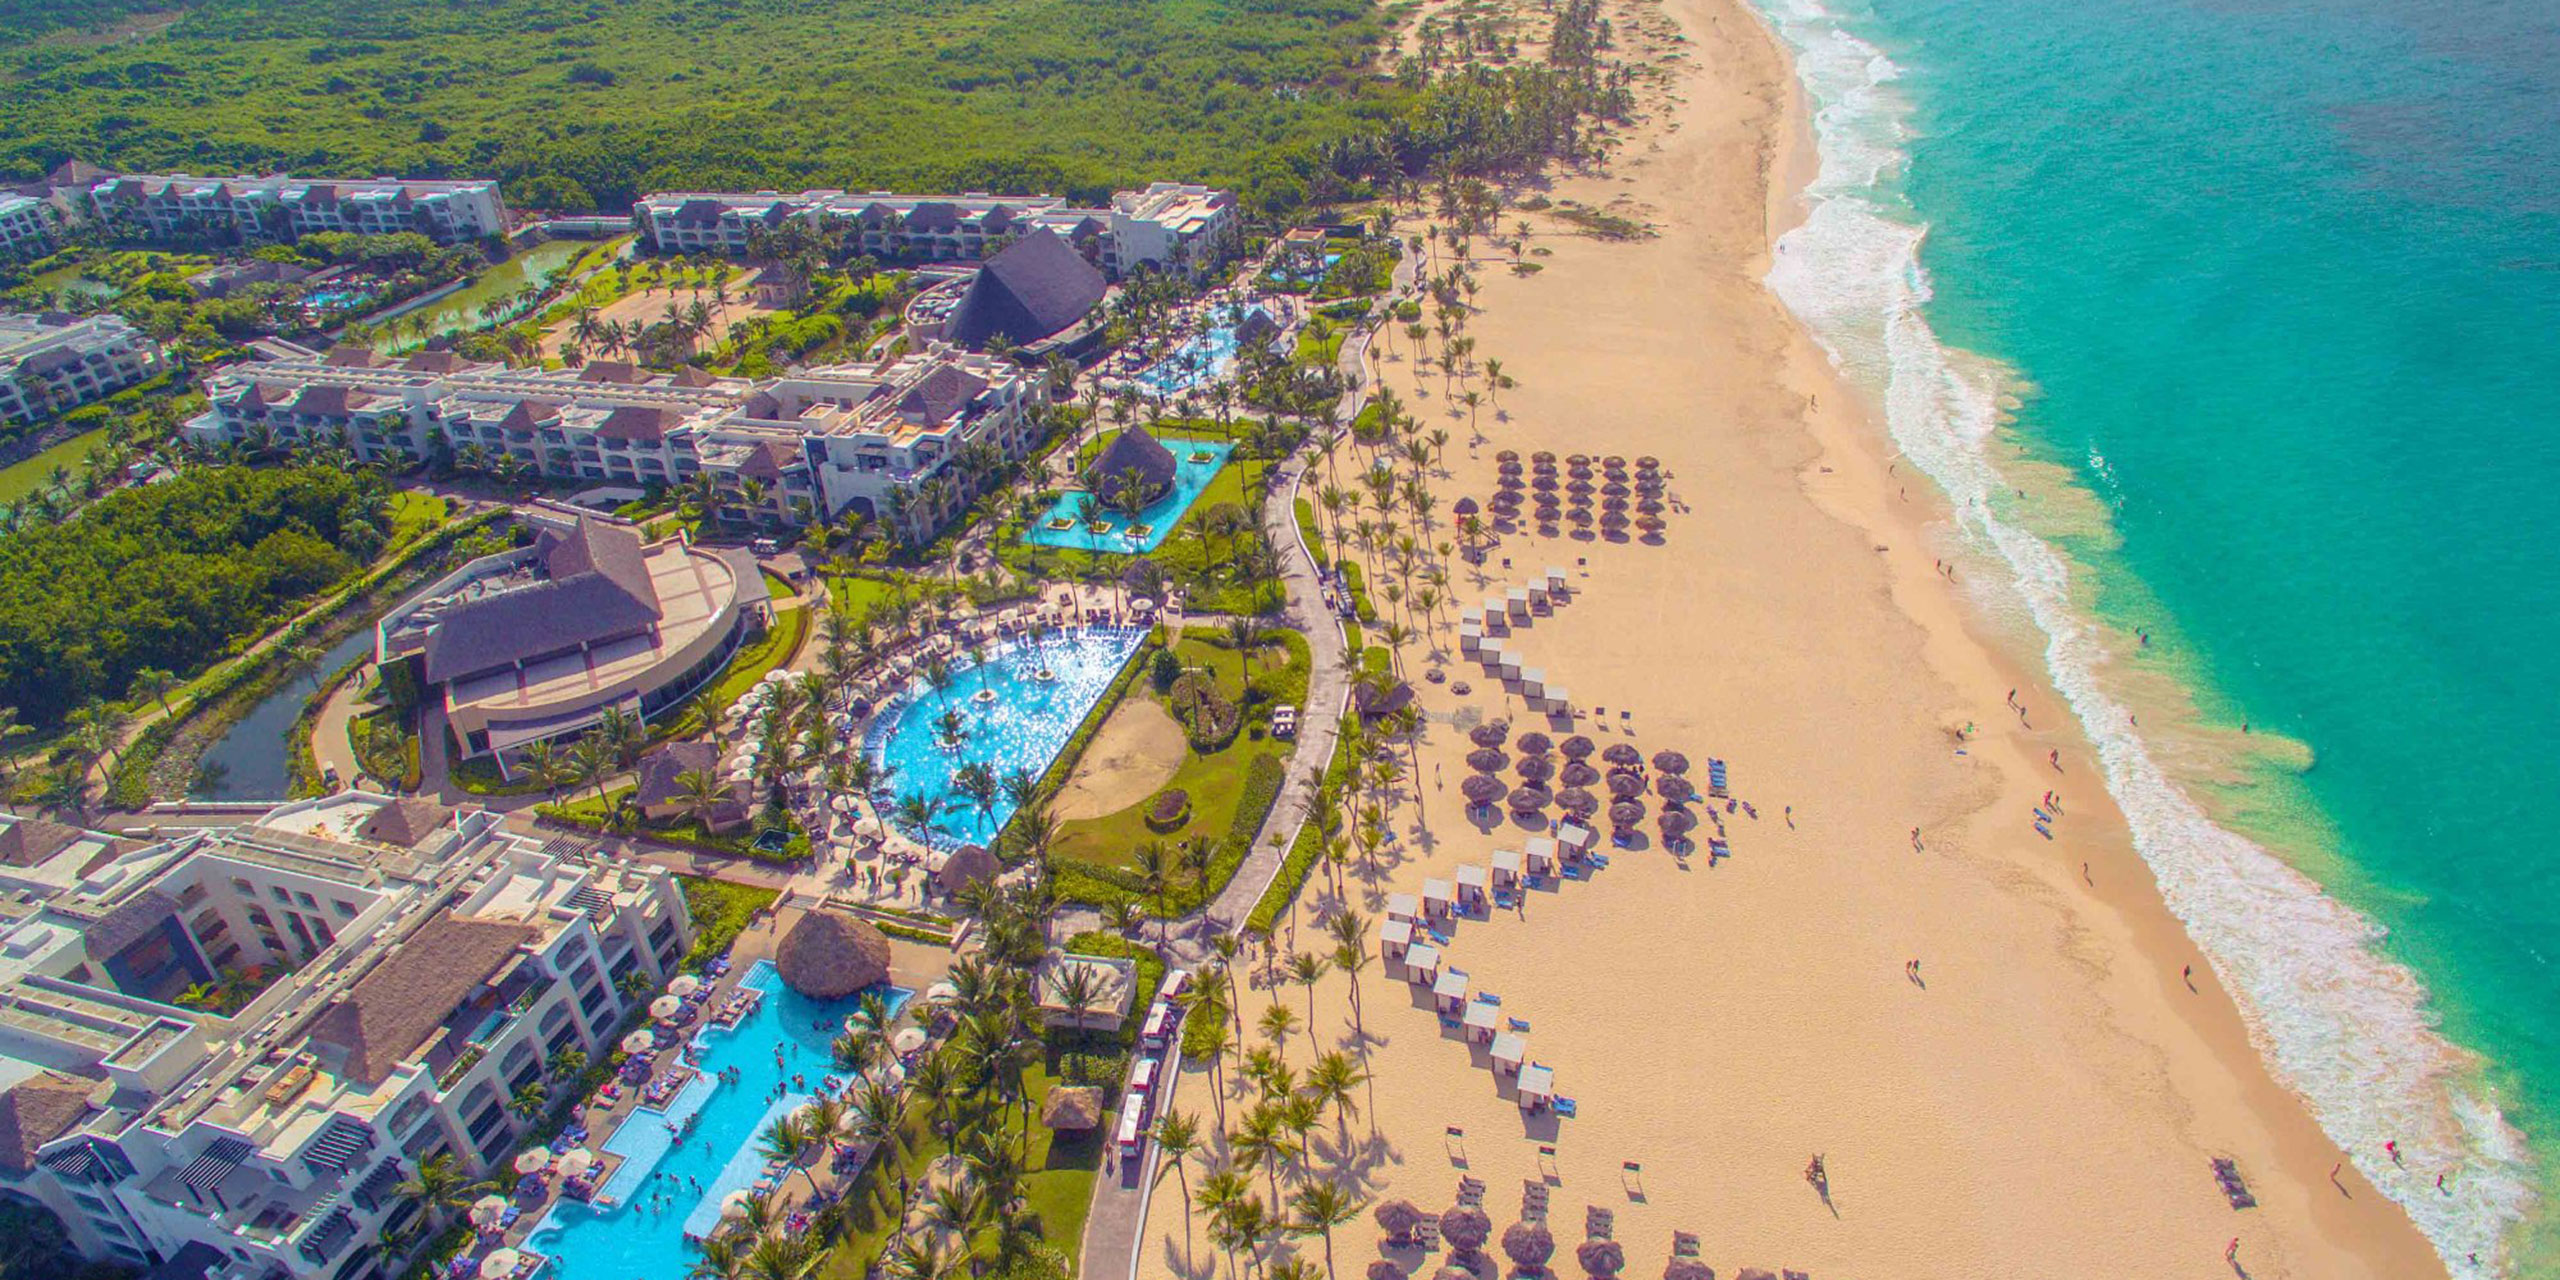 Aerial View of Hard Rock Hotel & Casino Punta Cana; Courtesy of Hard Rock Hotel & Casino Punta Cana